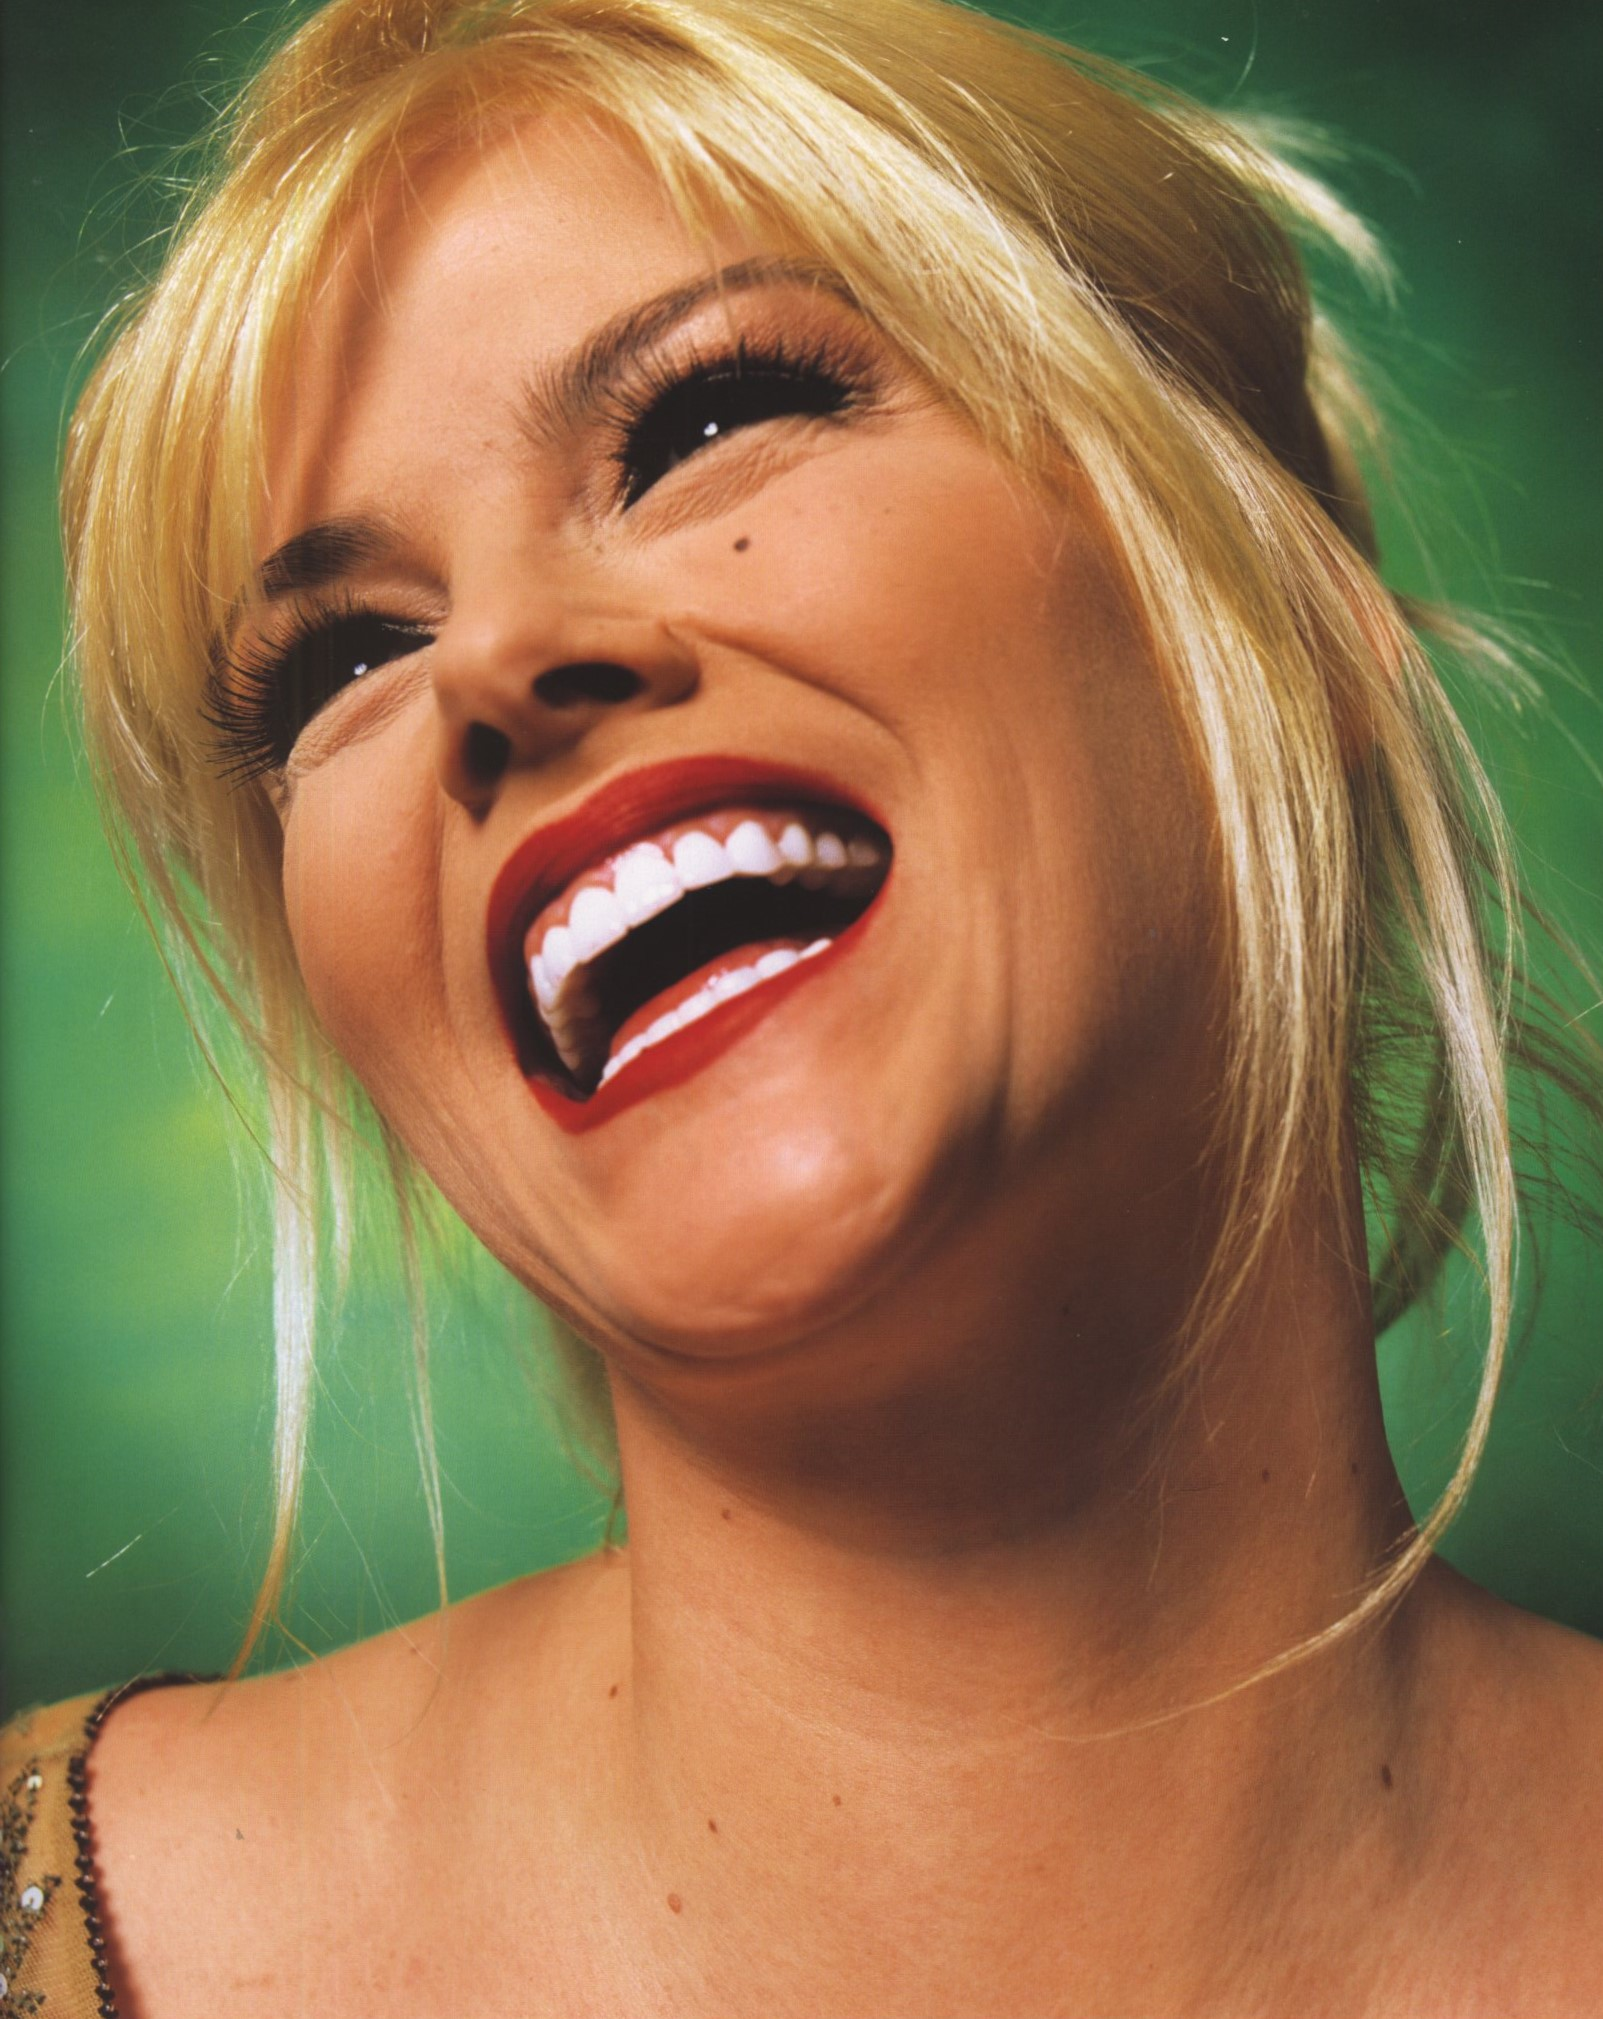 ANNA NICOLE SMITH | 2004 | PHOTOGRAPHY ANDRES SERRANO